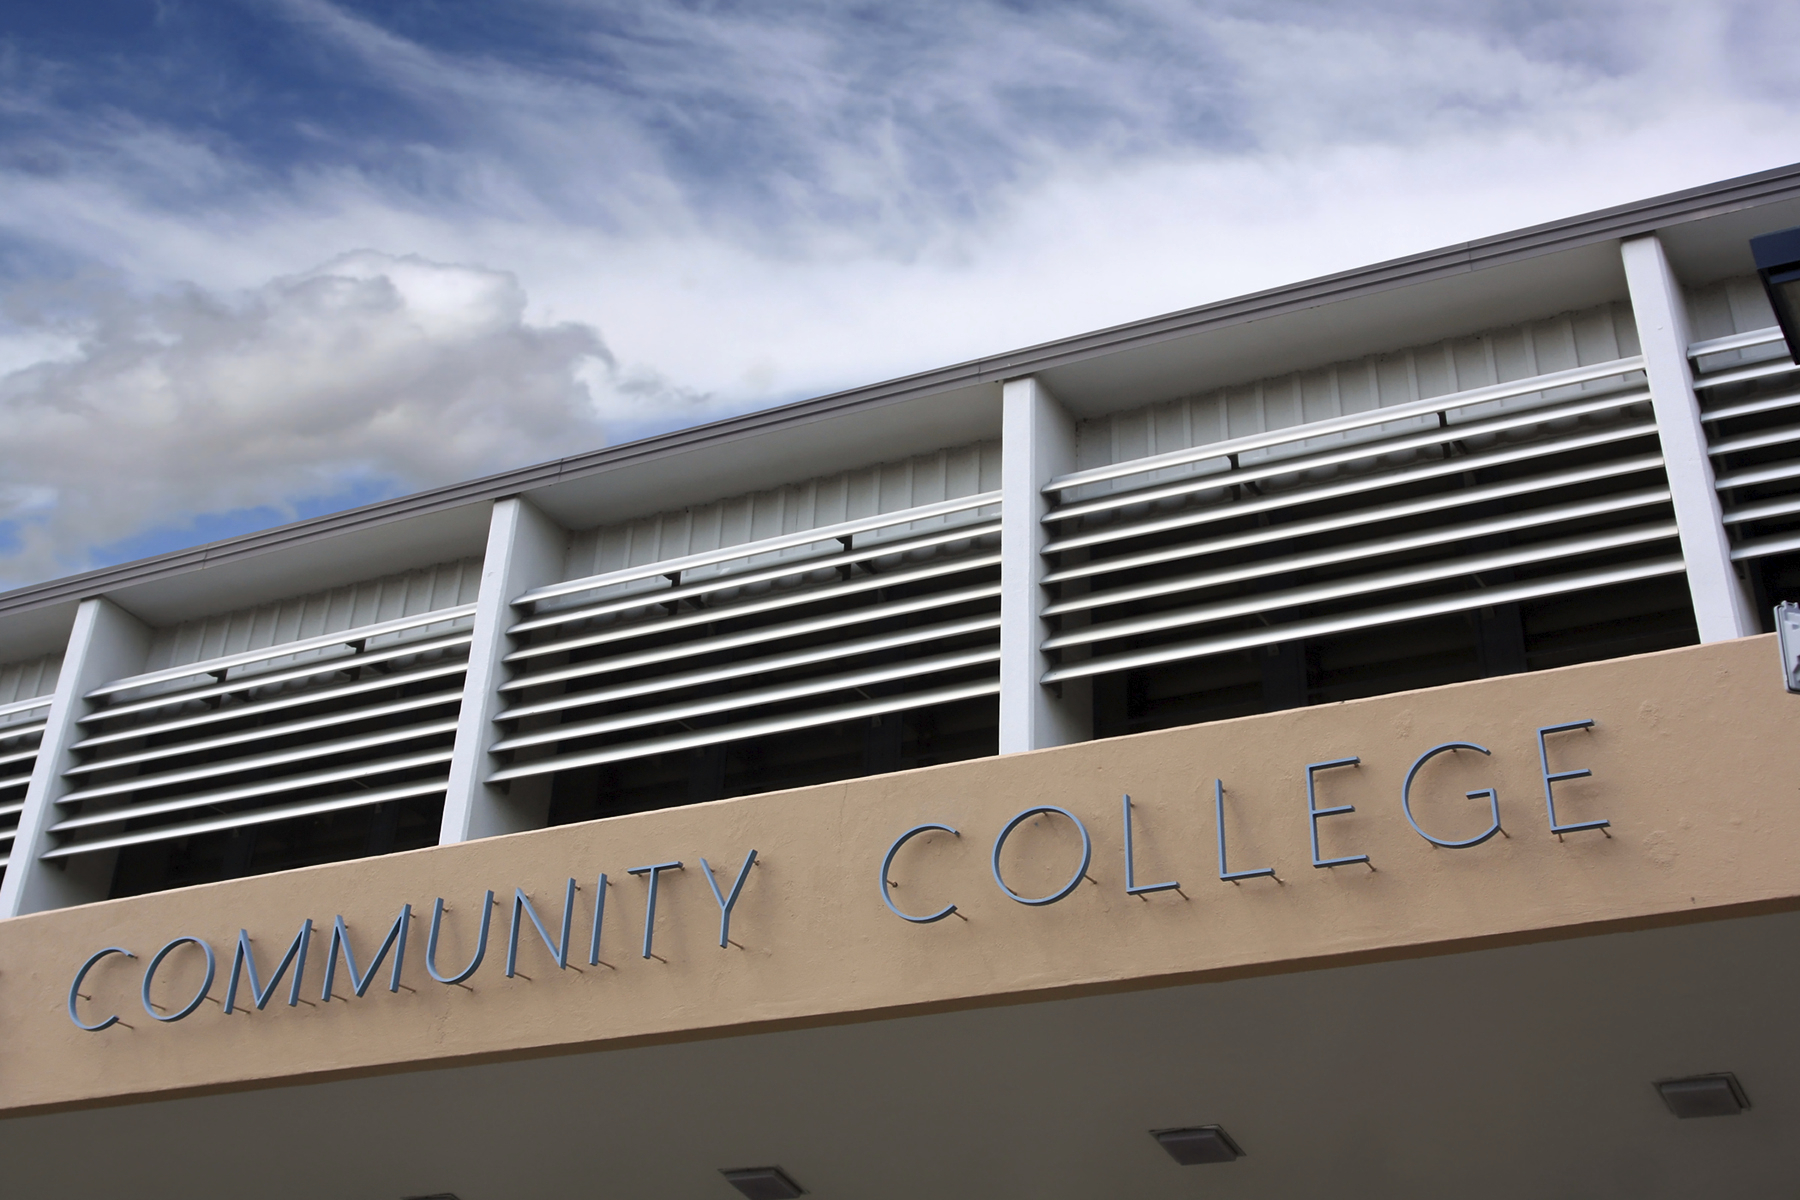 The Truth About Community College